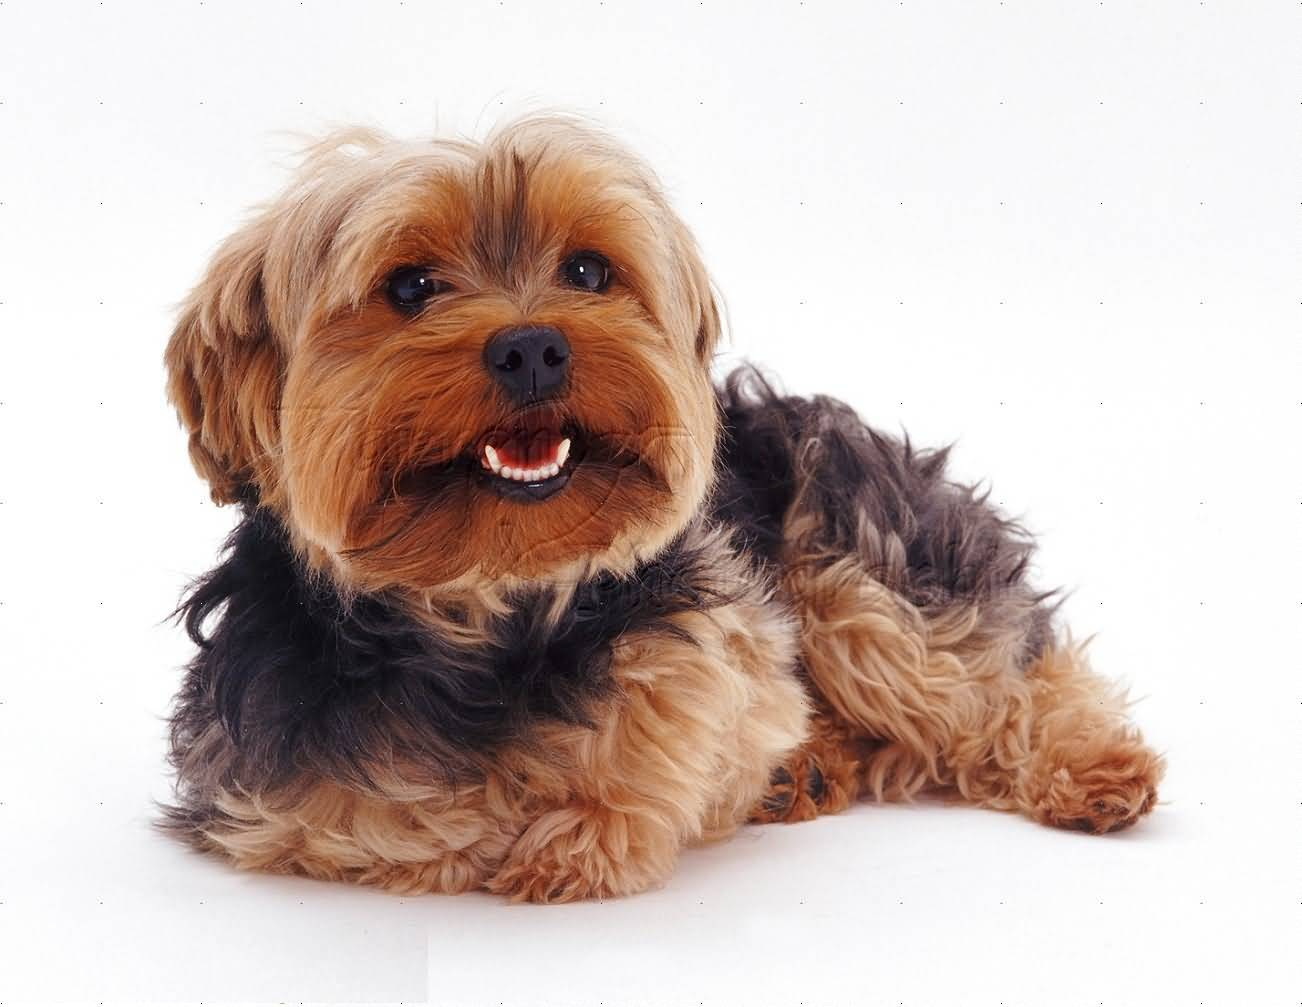 Beautiful Yorkshire Terrier Dog Laughing At Photographer